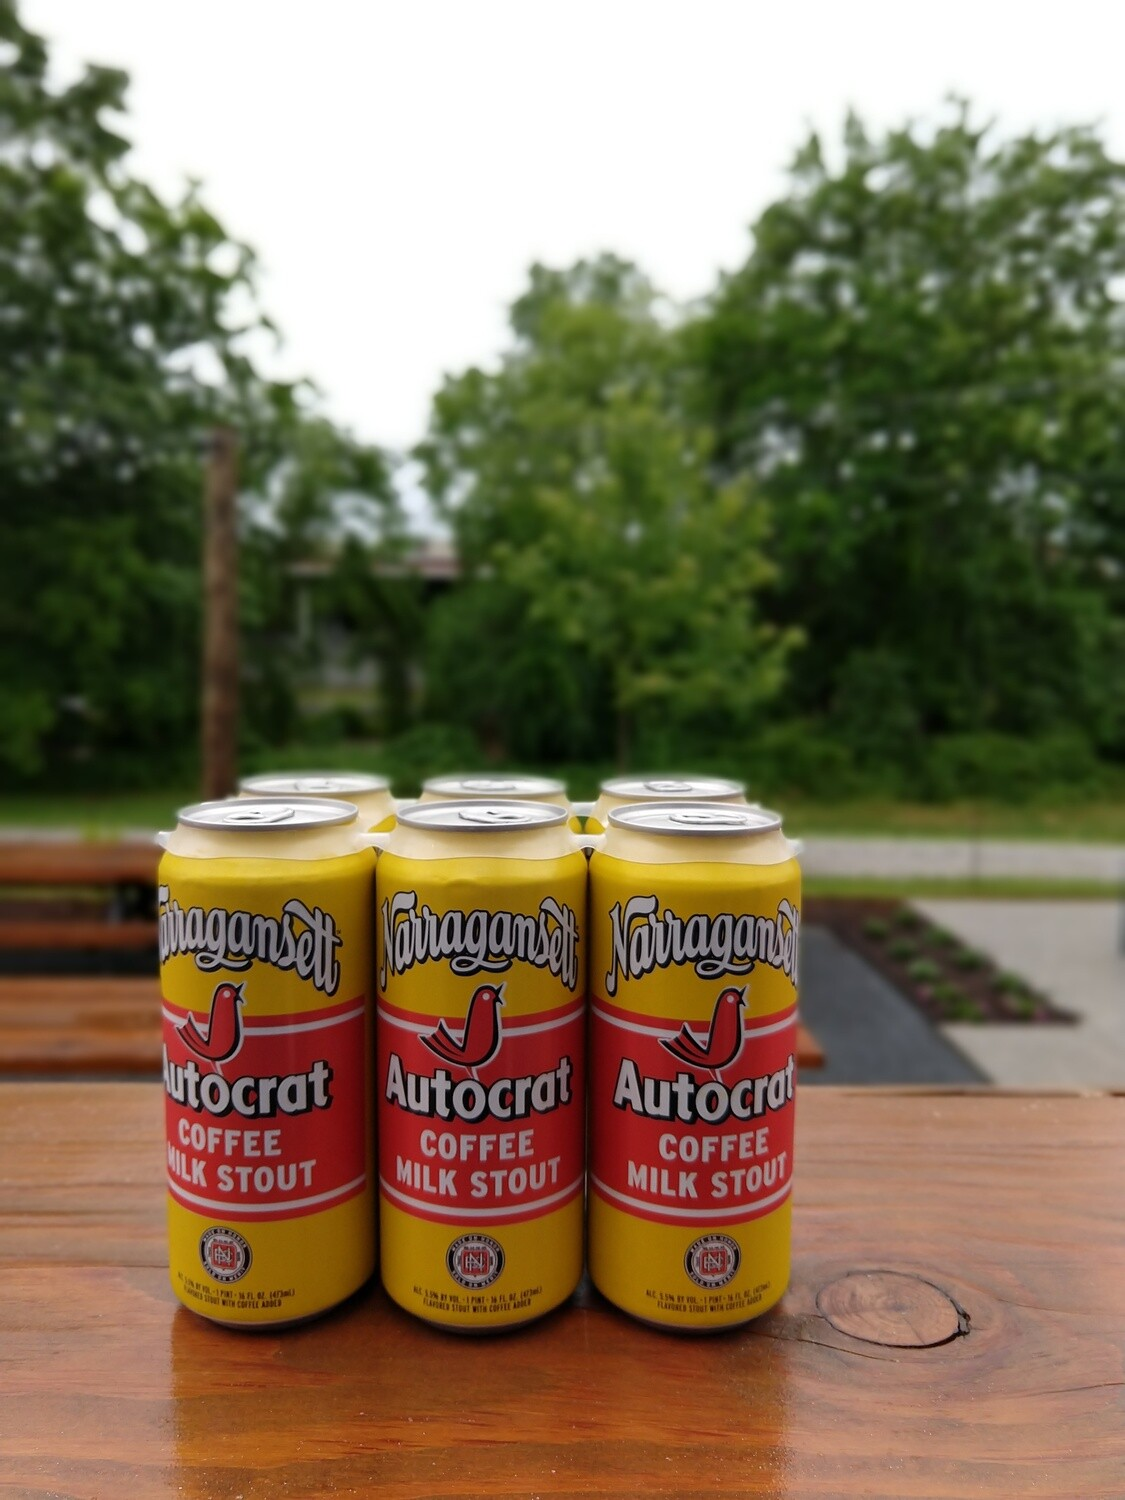 Narragansett Autocrat Coffee Stout 16oz Cans (6pk)